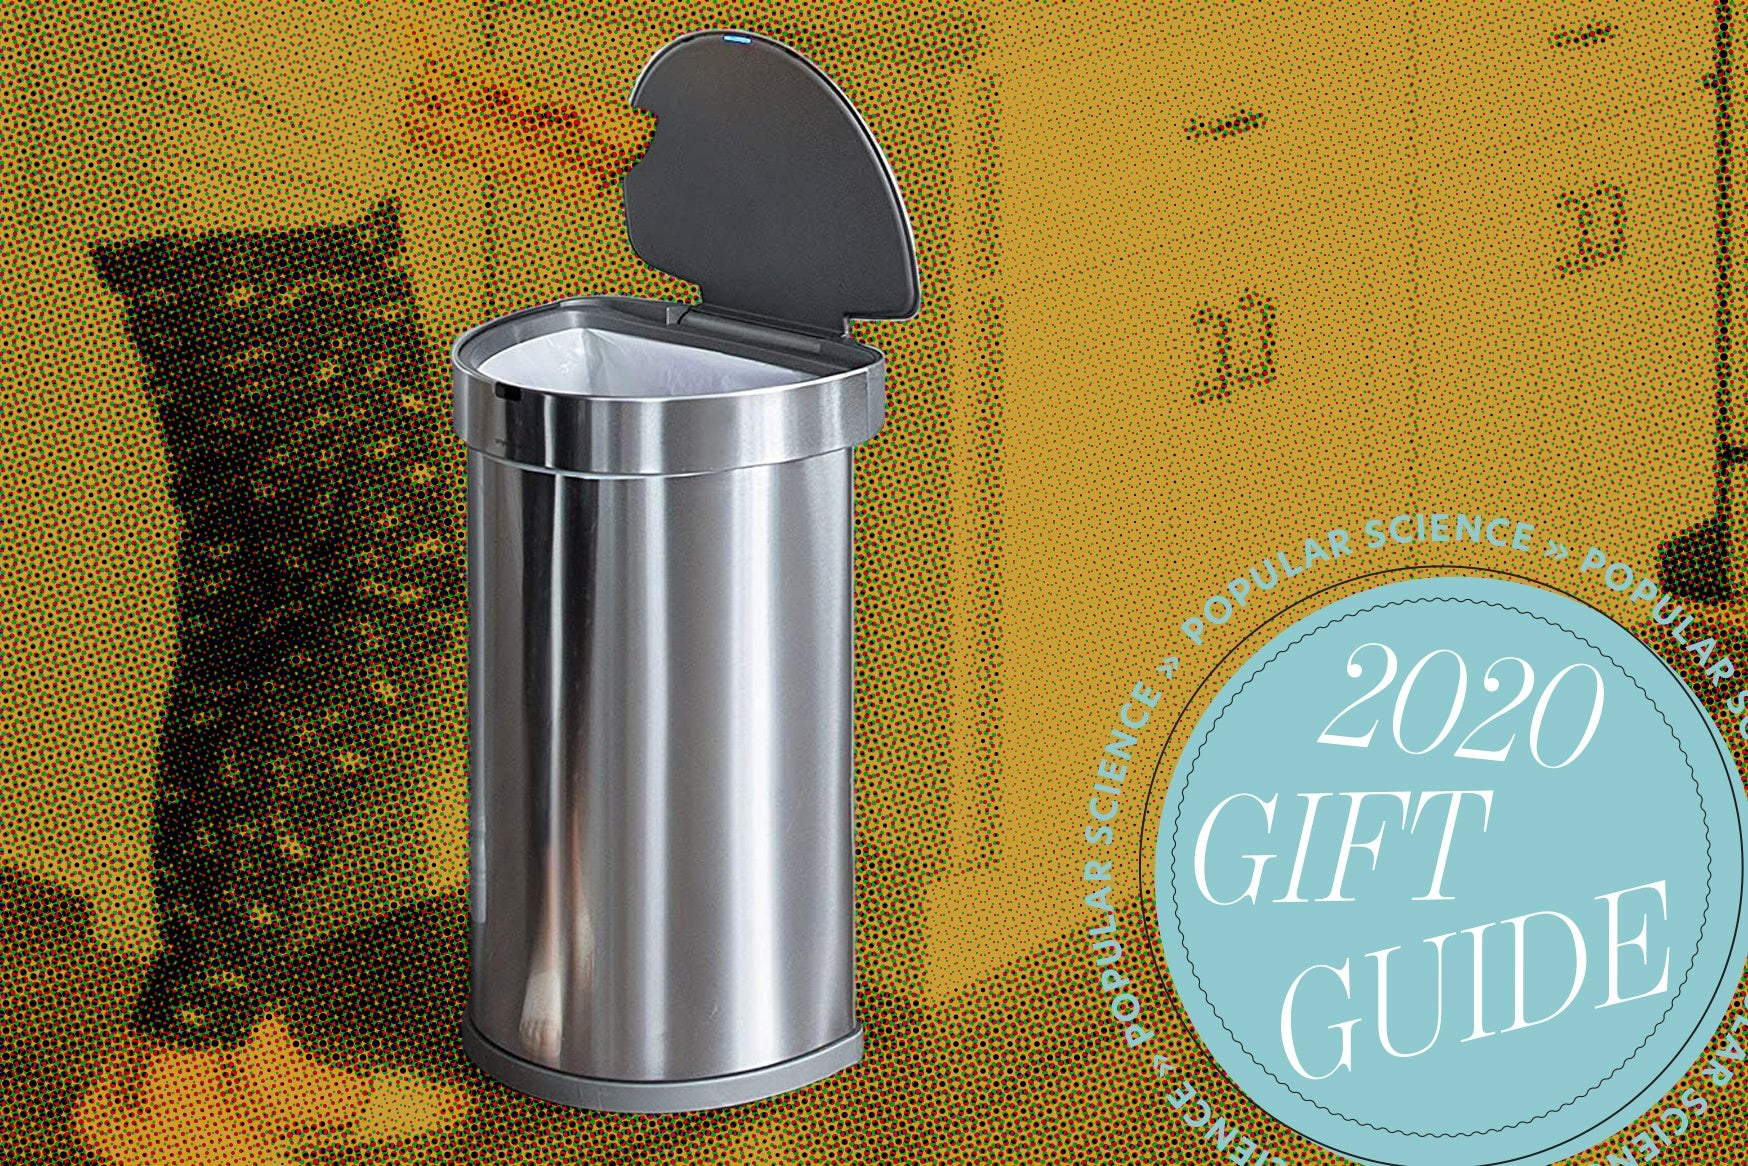 a person opens a flip-top trash can